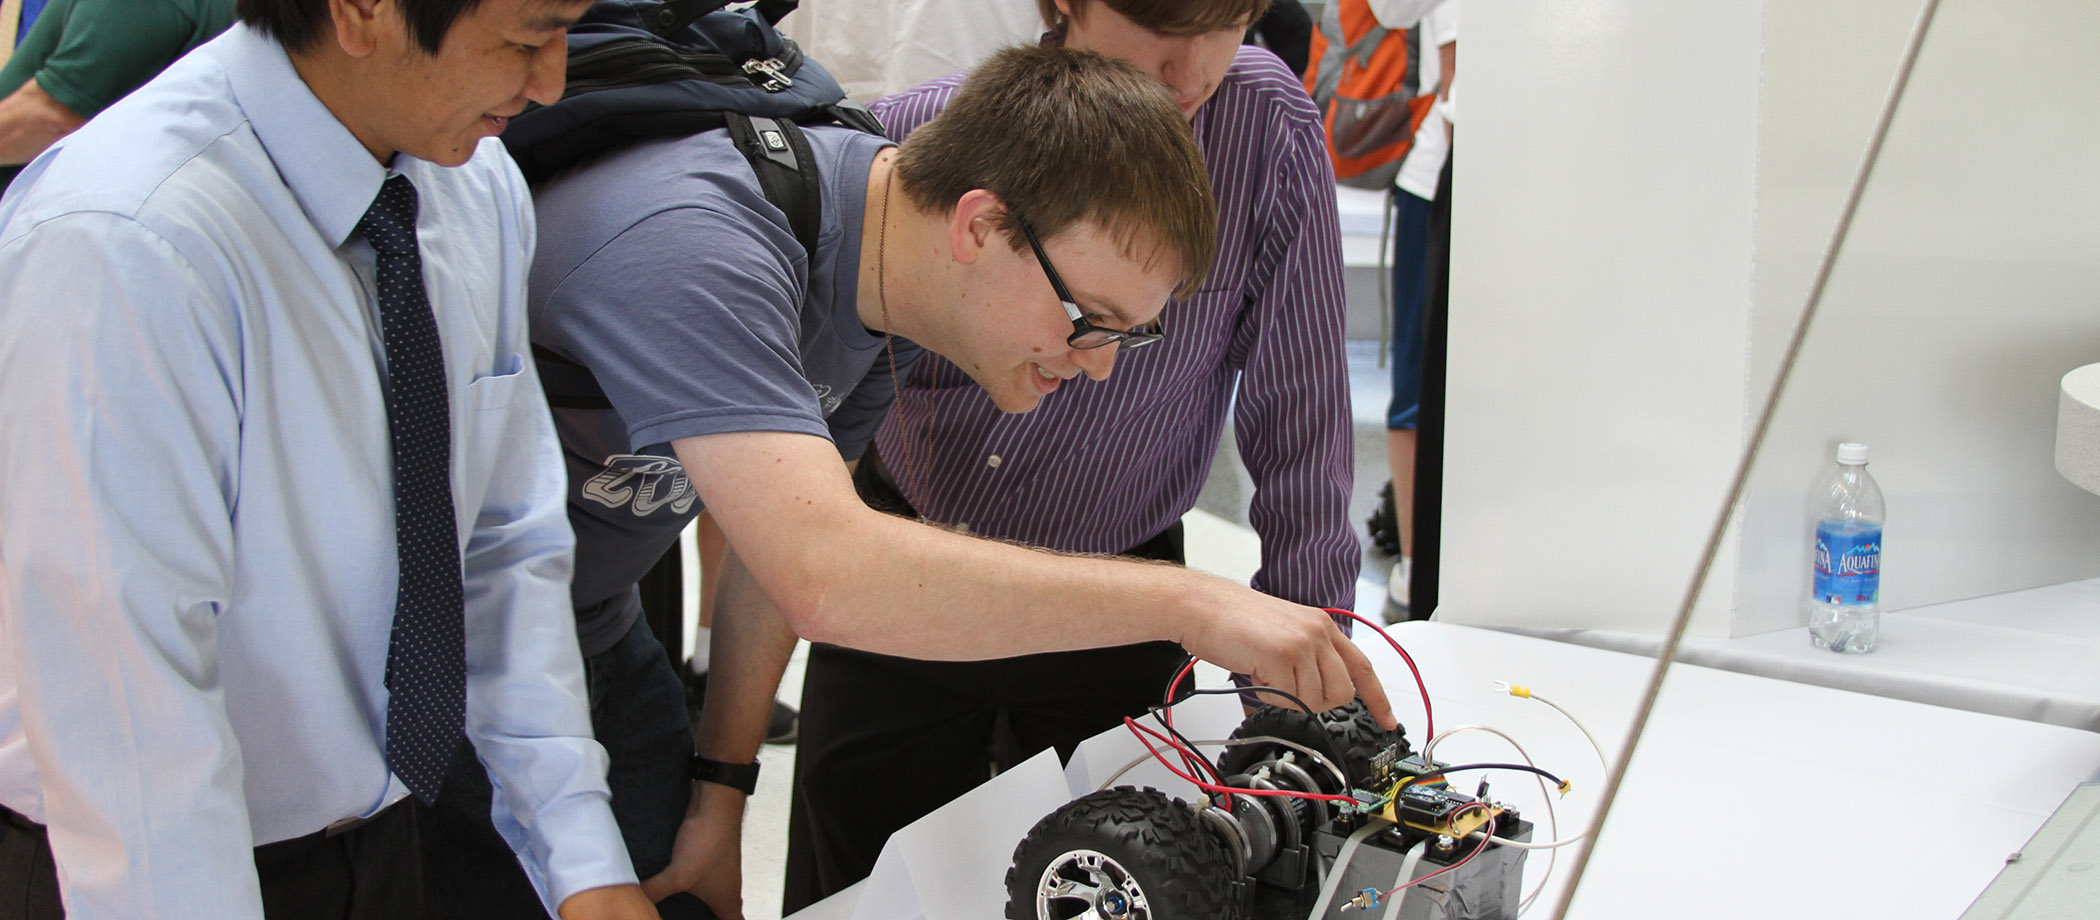 students looking at a CEENBoT